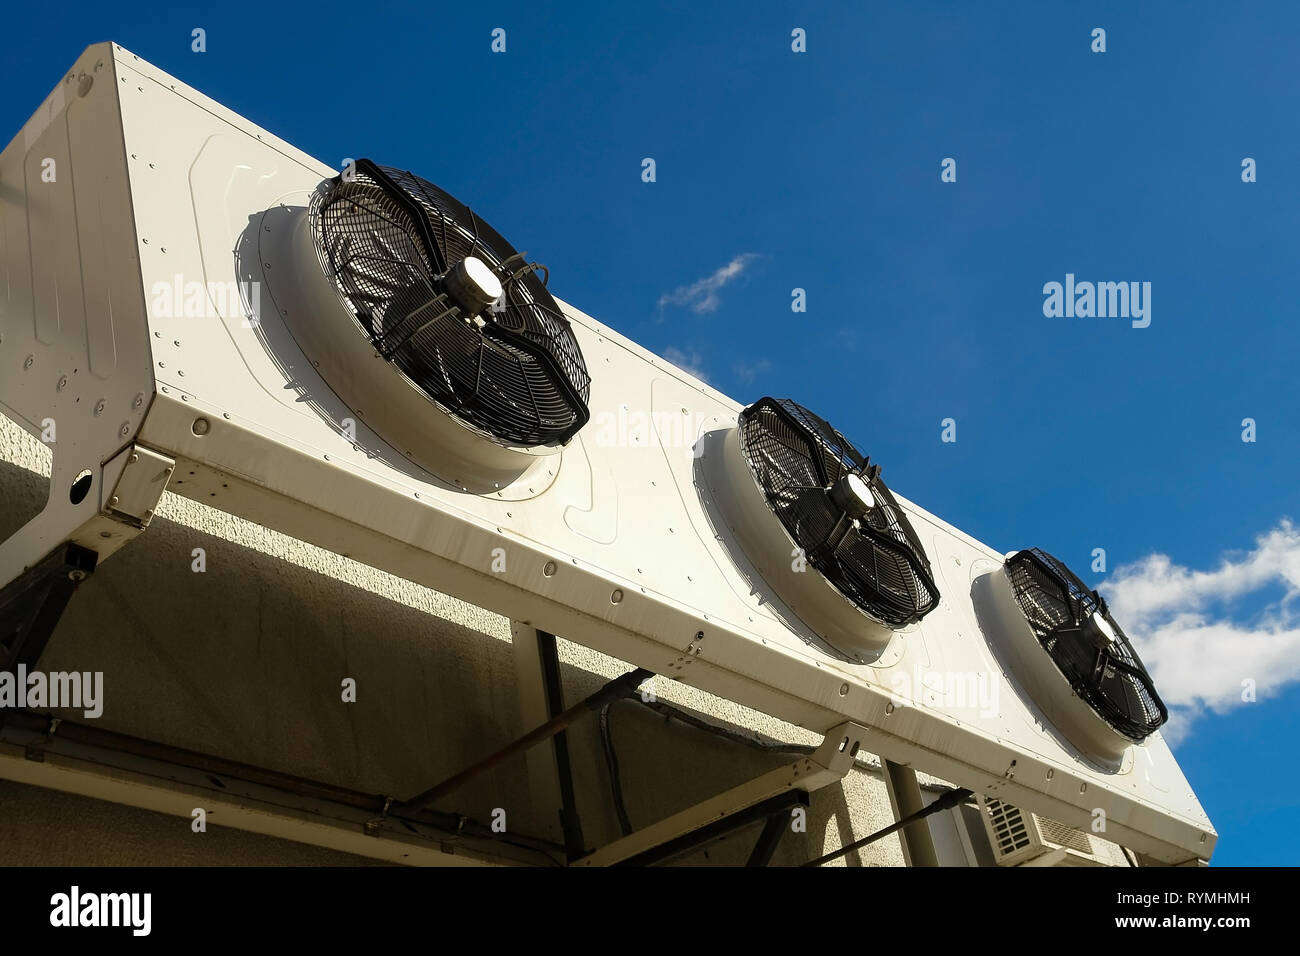 Industrial air conditioning system on the wall outdoors. Stock Photo